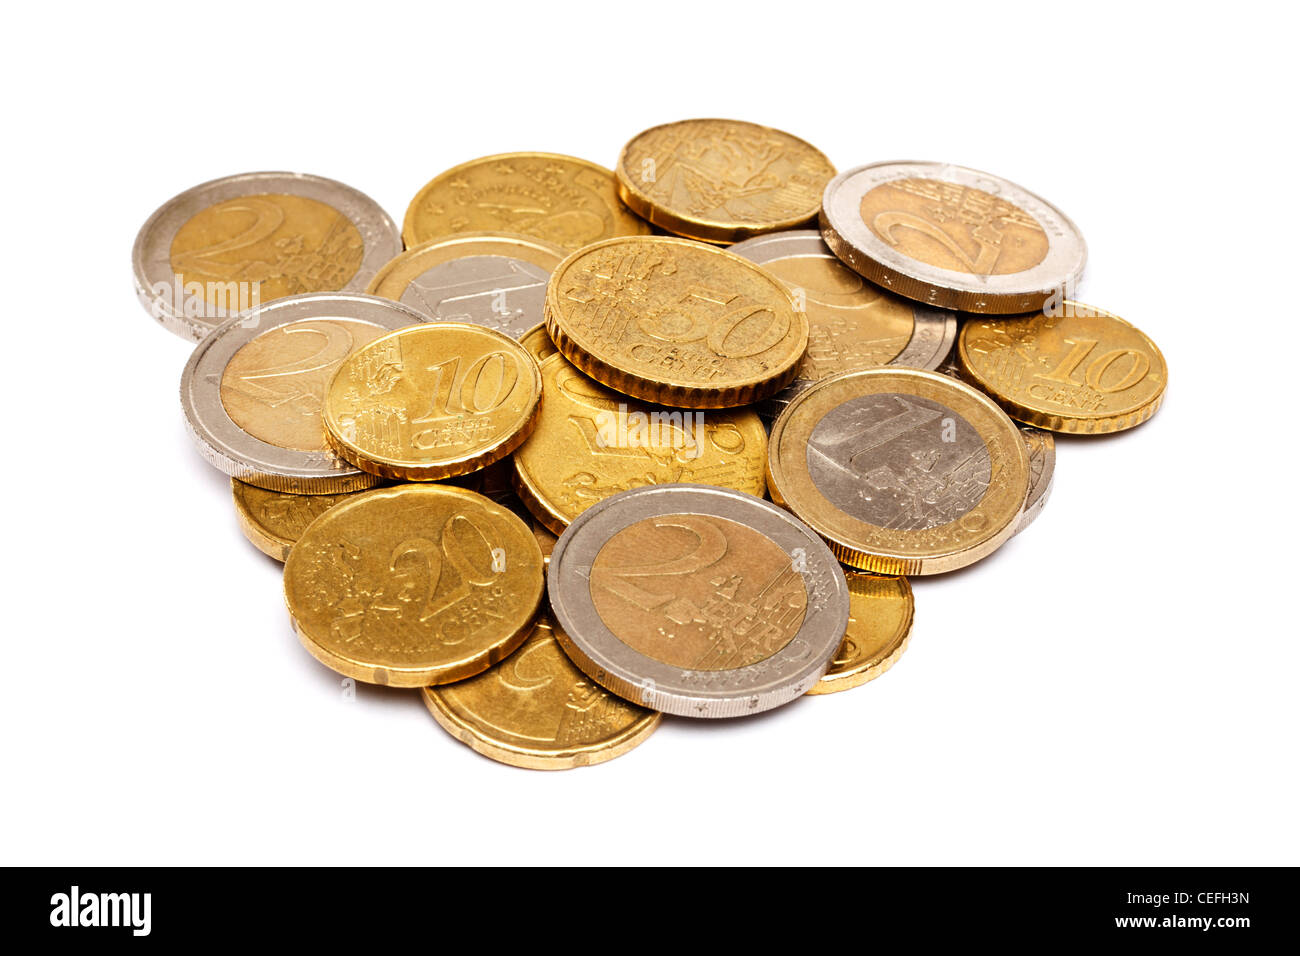 Pile of Euro coins - Stock Image